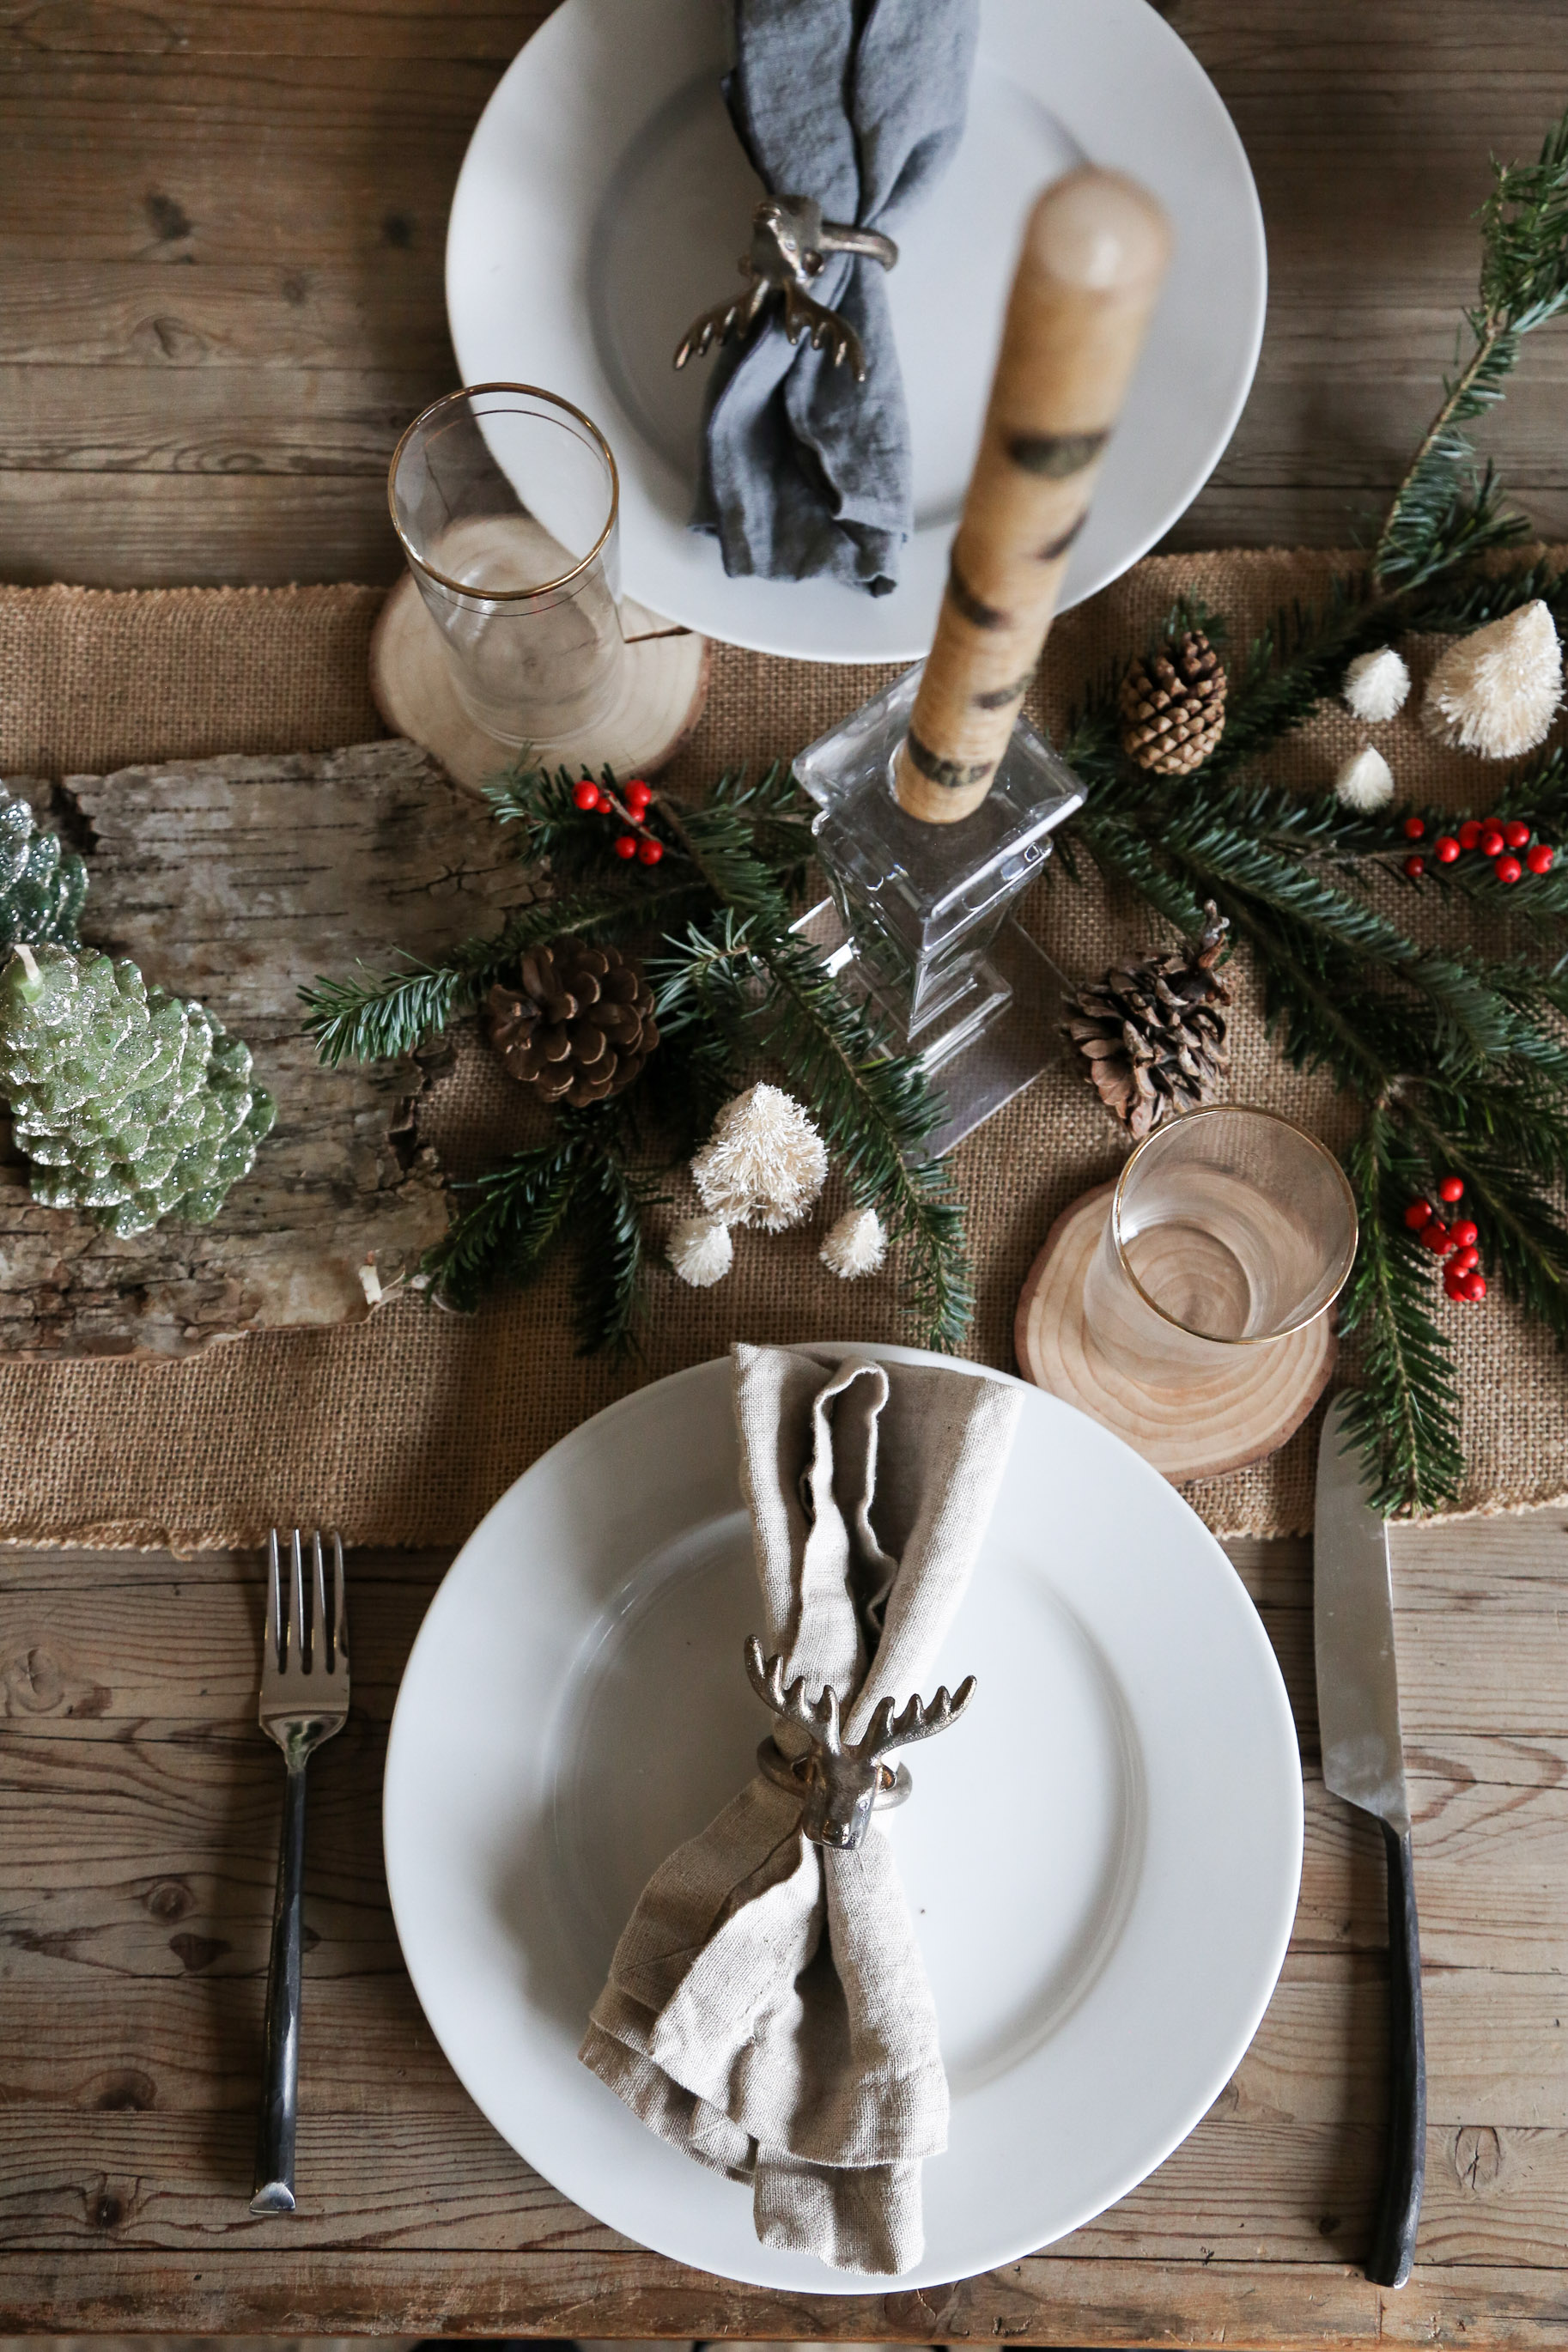 How-to-create-a-rustic-cozy-winter-woods-tablescape-for-the-holidays10.jpg